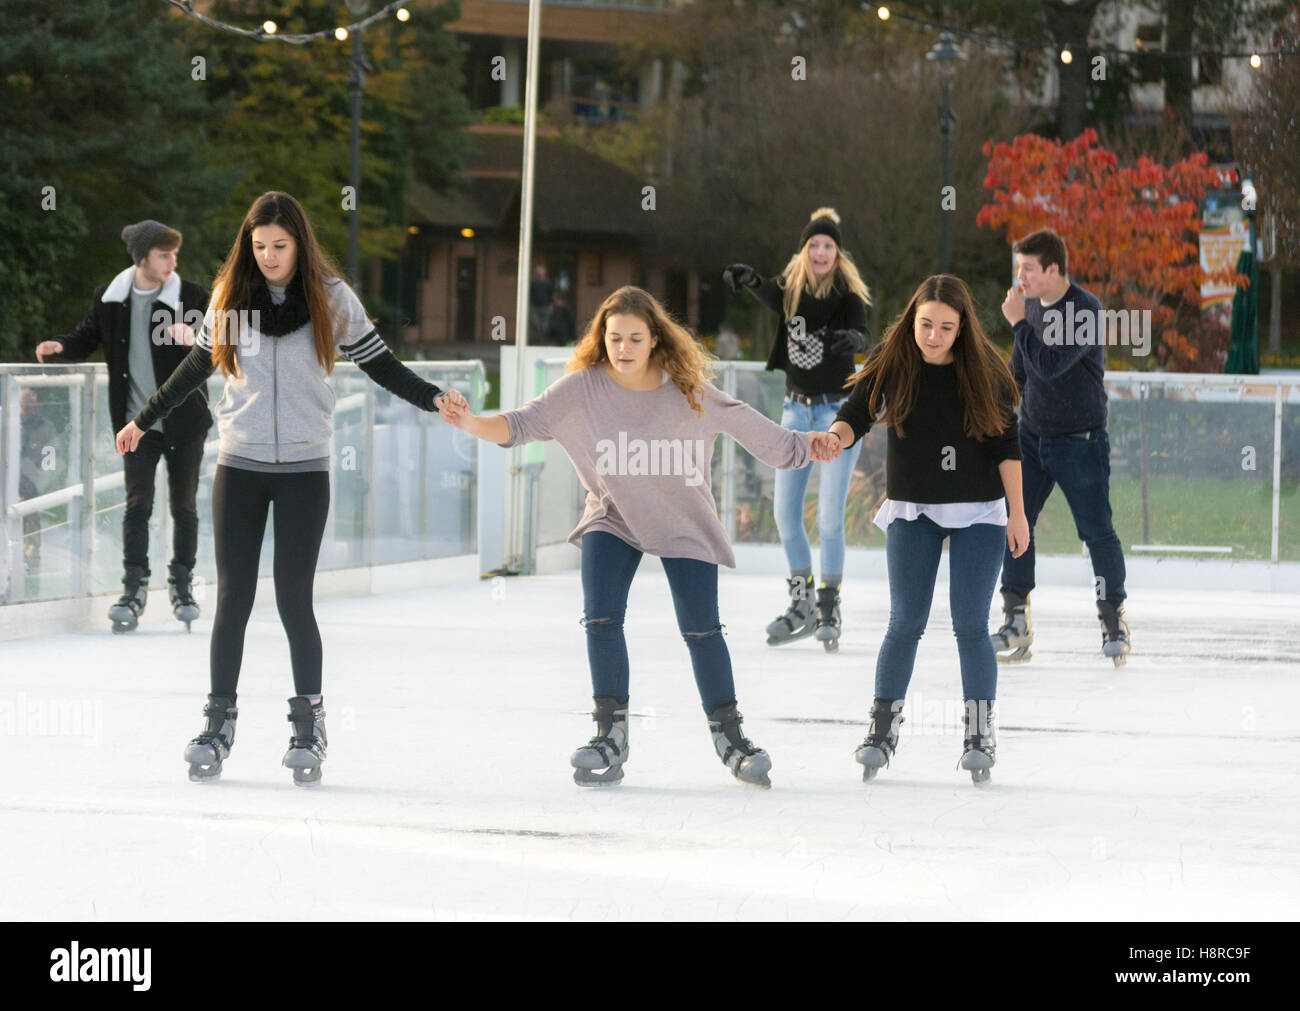 Bournemouth, Dorset, UK. 16th Nov, 2016. 16th November 2016, Bournemouth, Dorset, UK. A temporary real ice rink Stock Photo